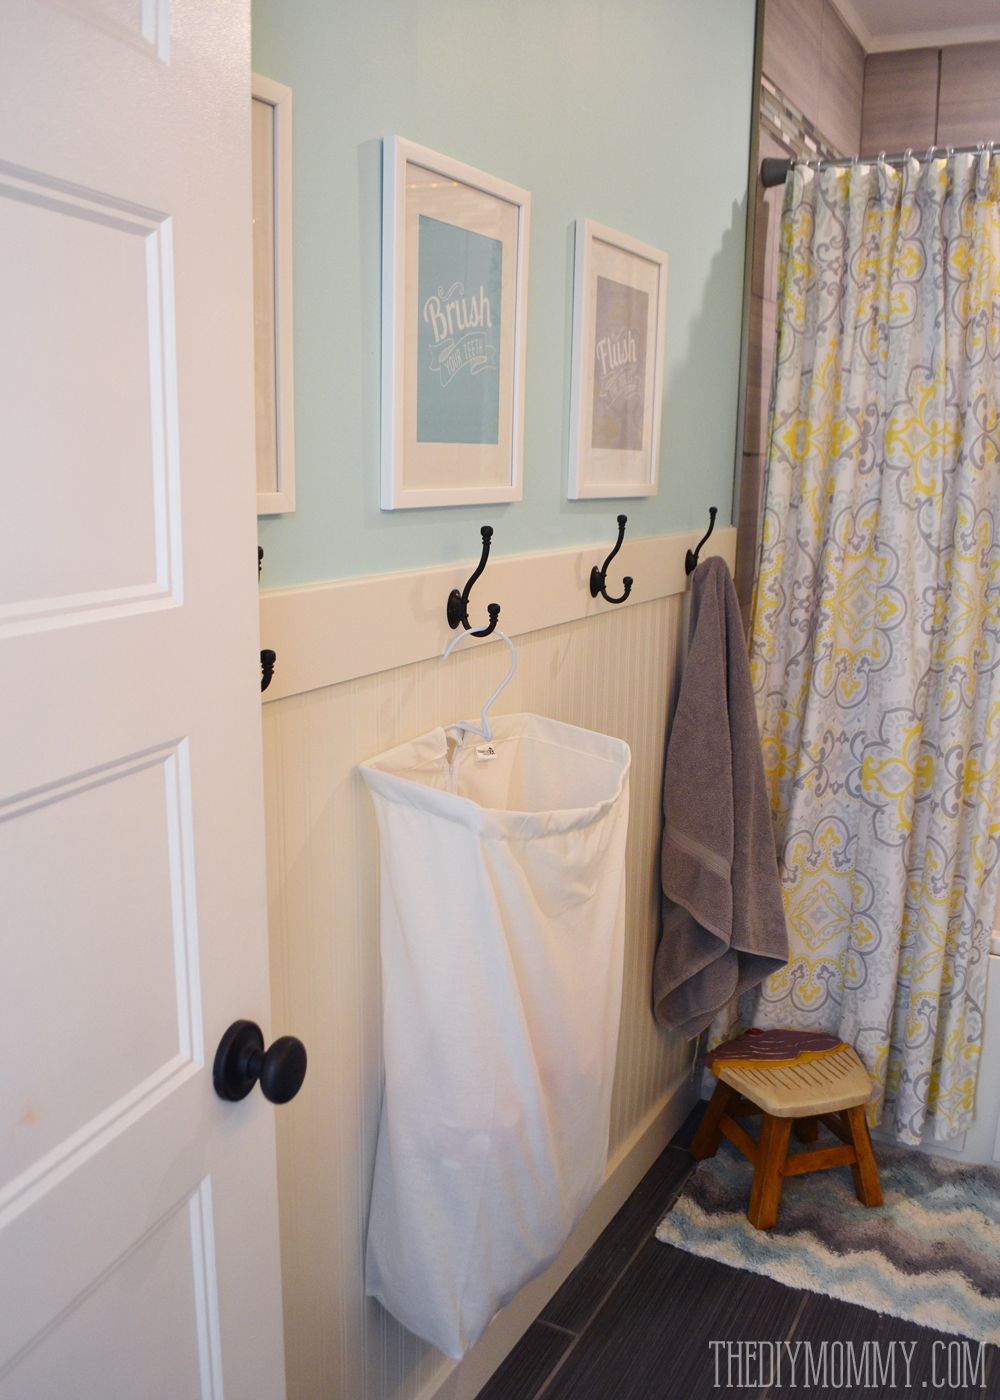 How To Install An Easy DIY Beadboard Hook Wall In A Bathroom. Itu0027s Pretty  And Practical!